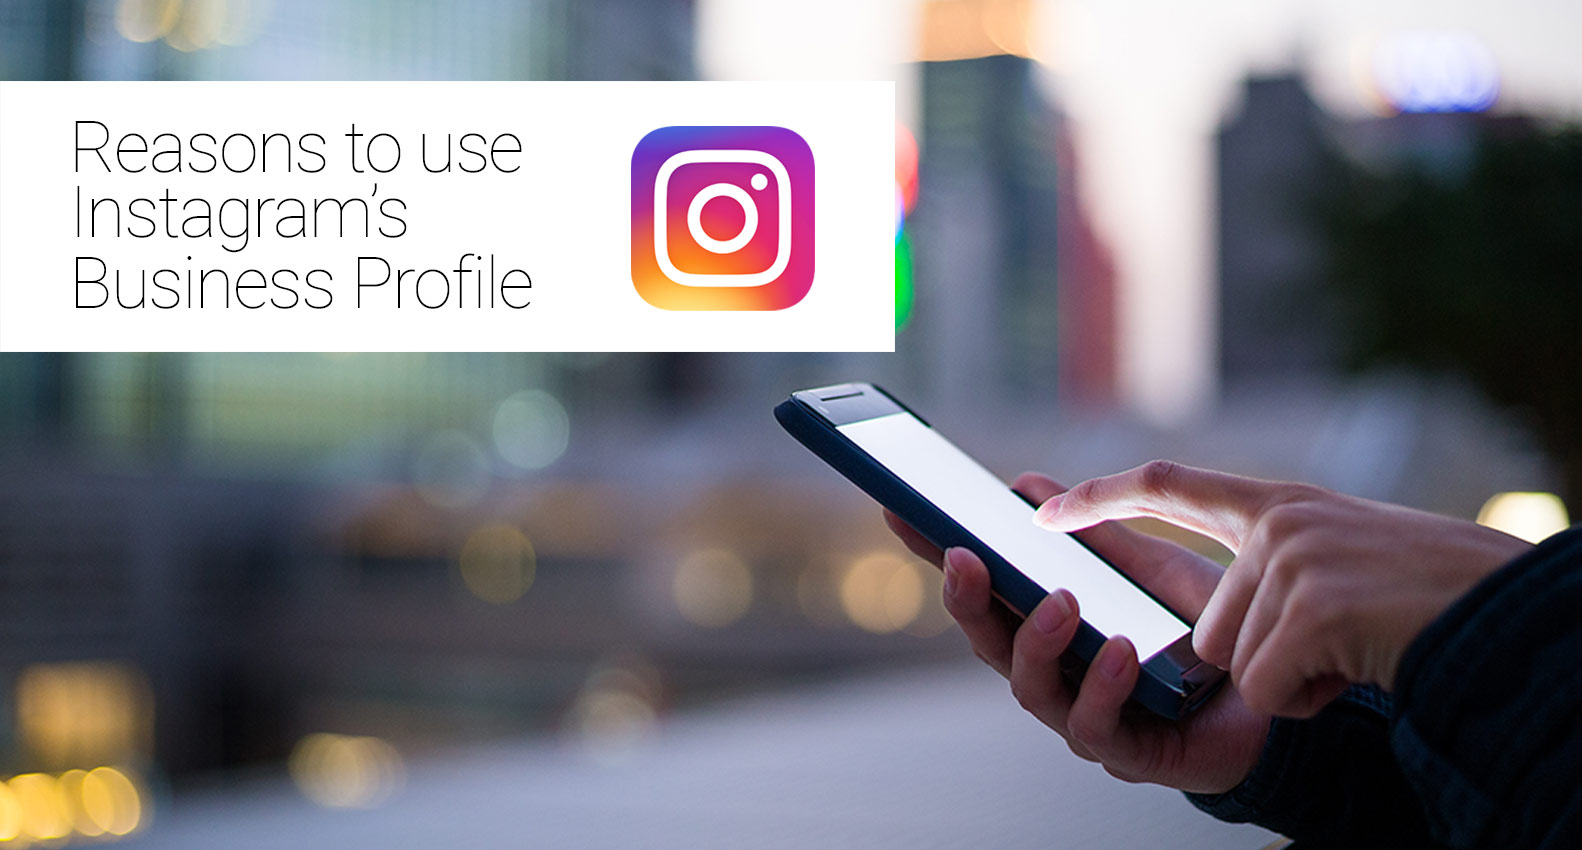 Reasons to Use Instagram Business Profile